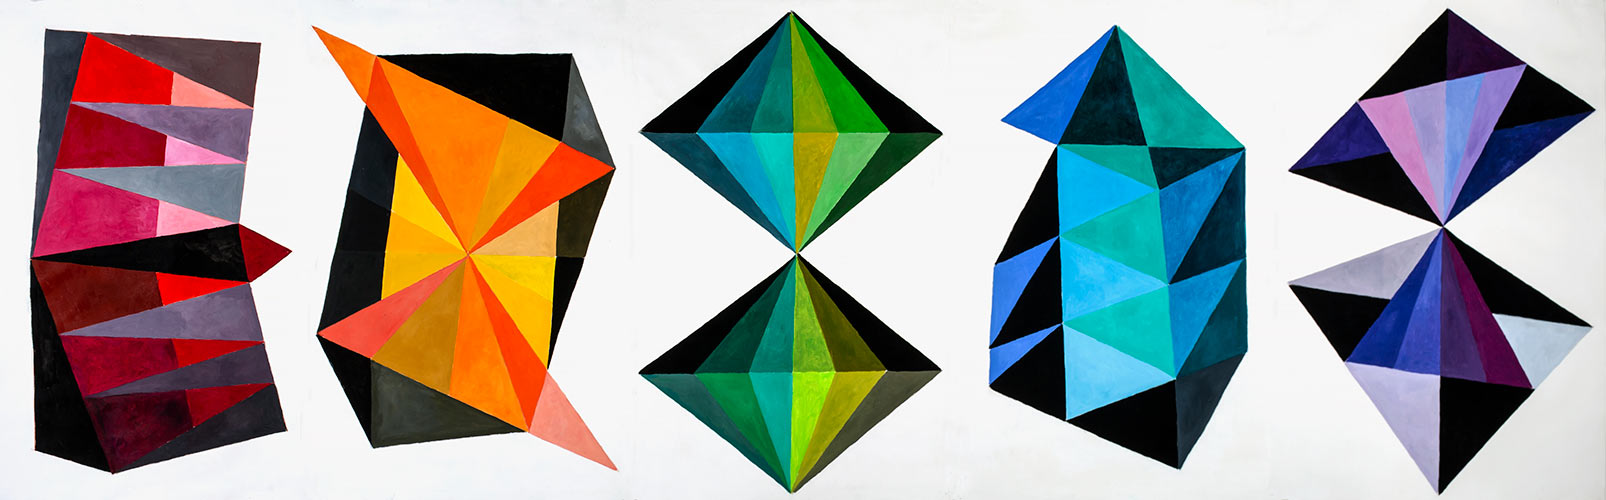 Spectrum, 5 panels, Oil on paper, 44 X 150 inches, Mary Alice Copp